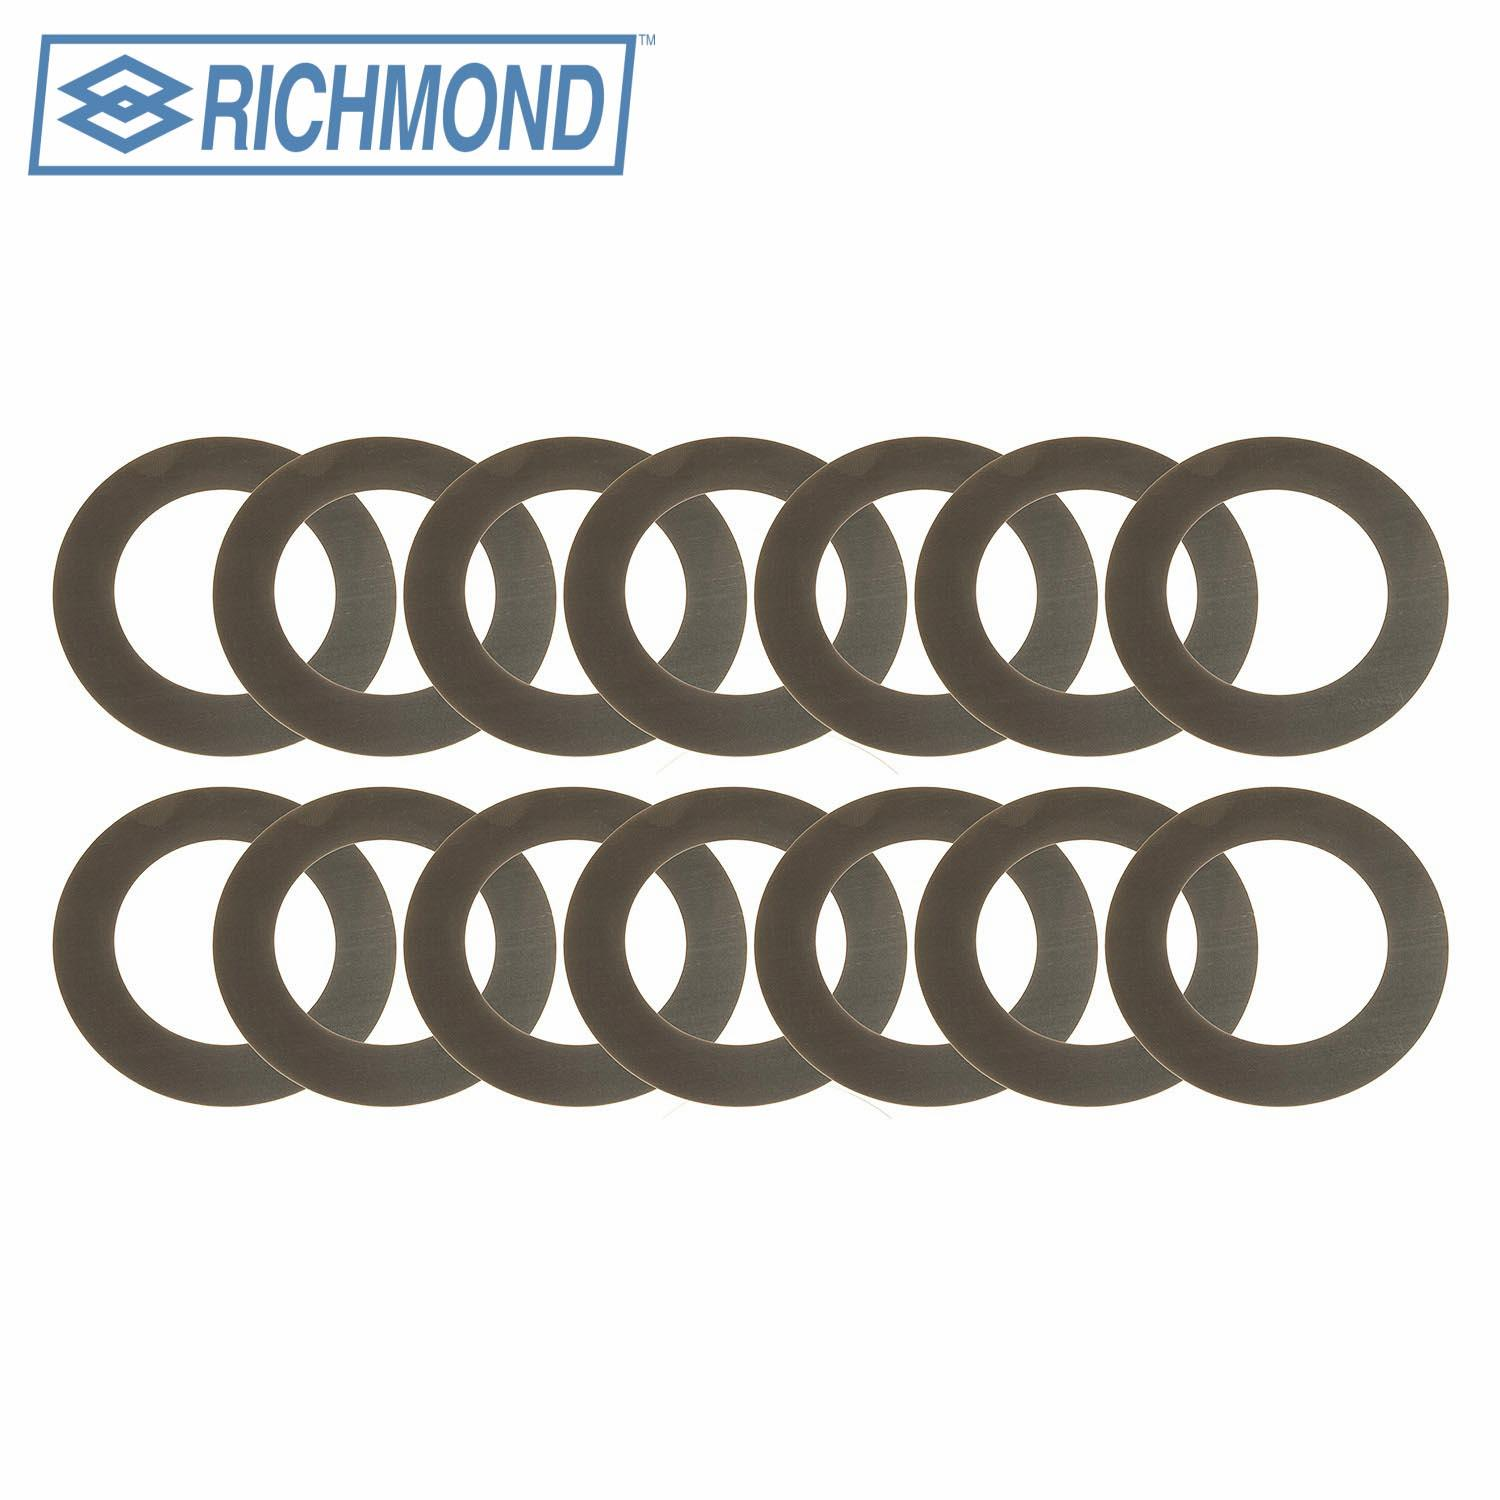 38-0006-1 Richmond Gear Differential Pinion Bearing Spacer Ford 7.5